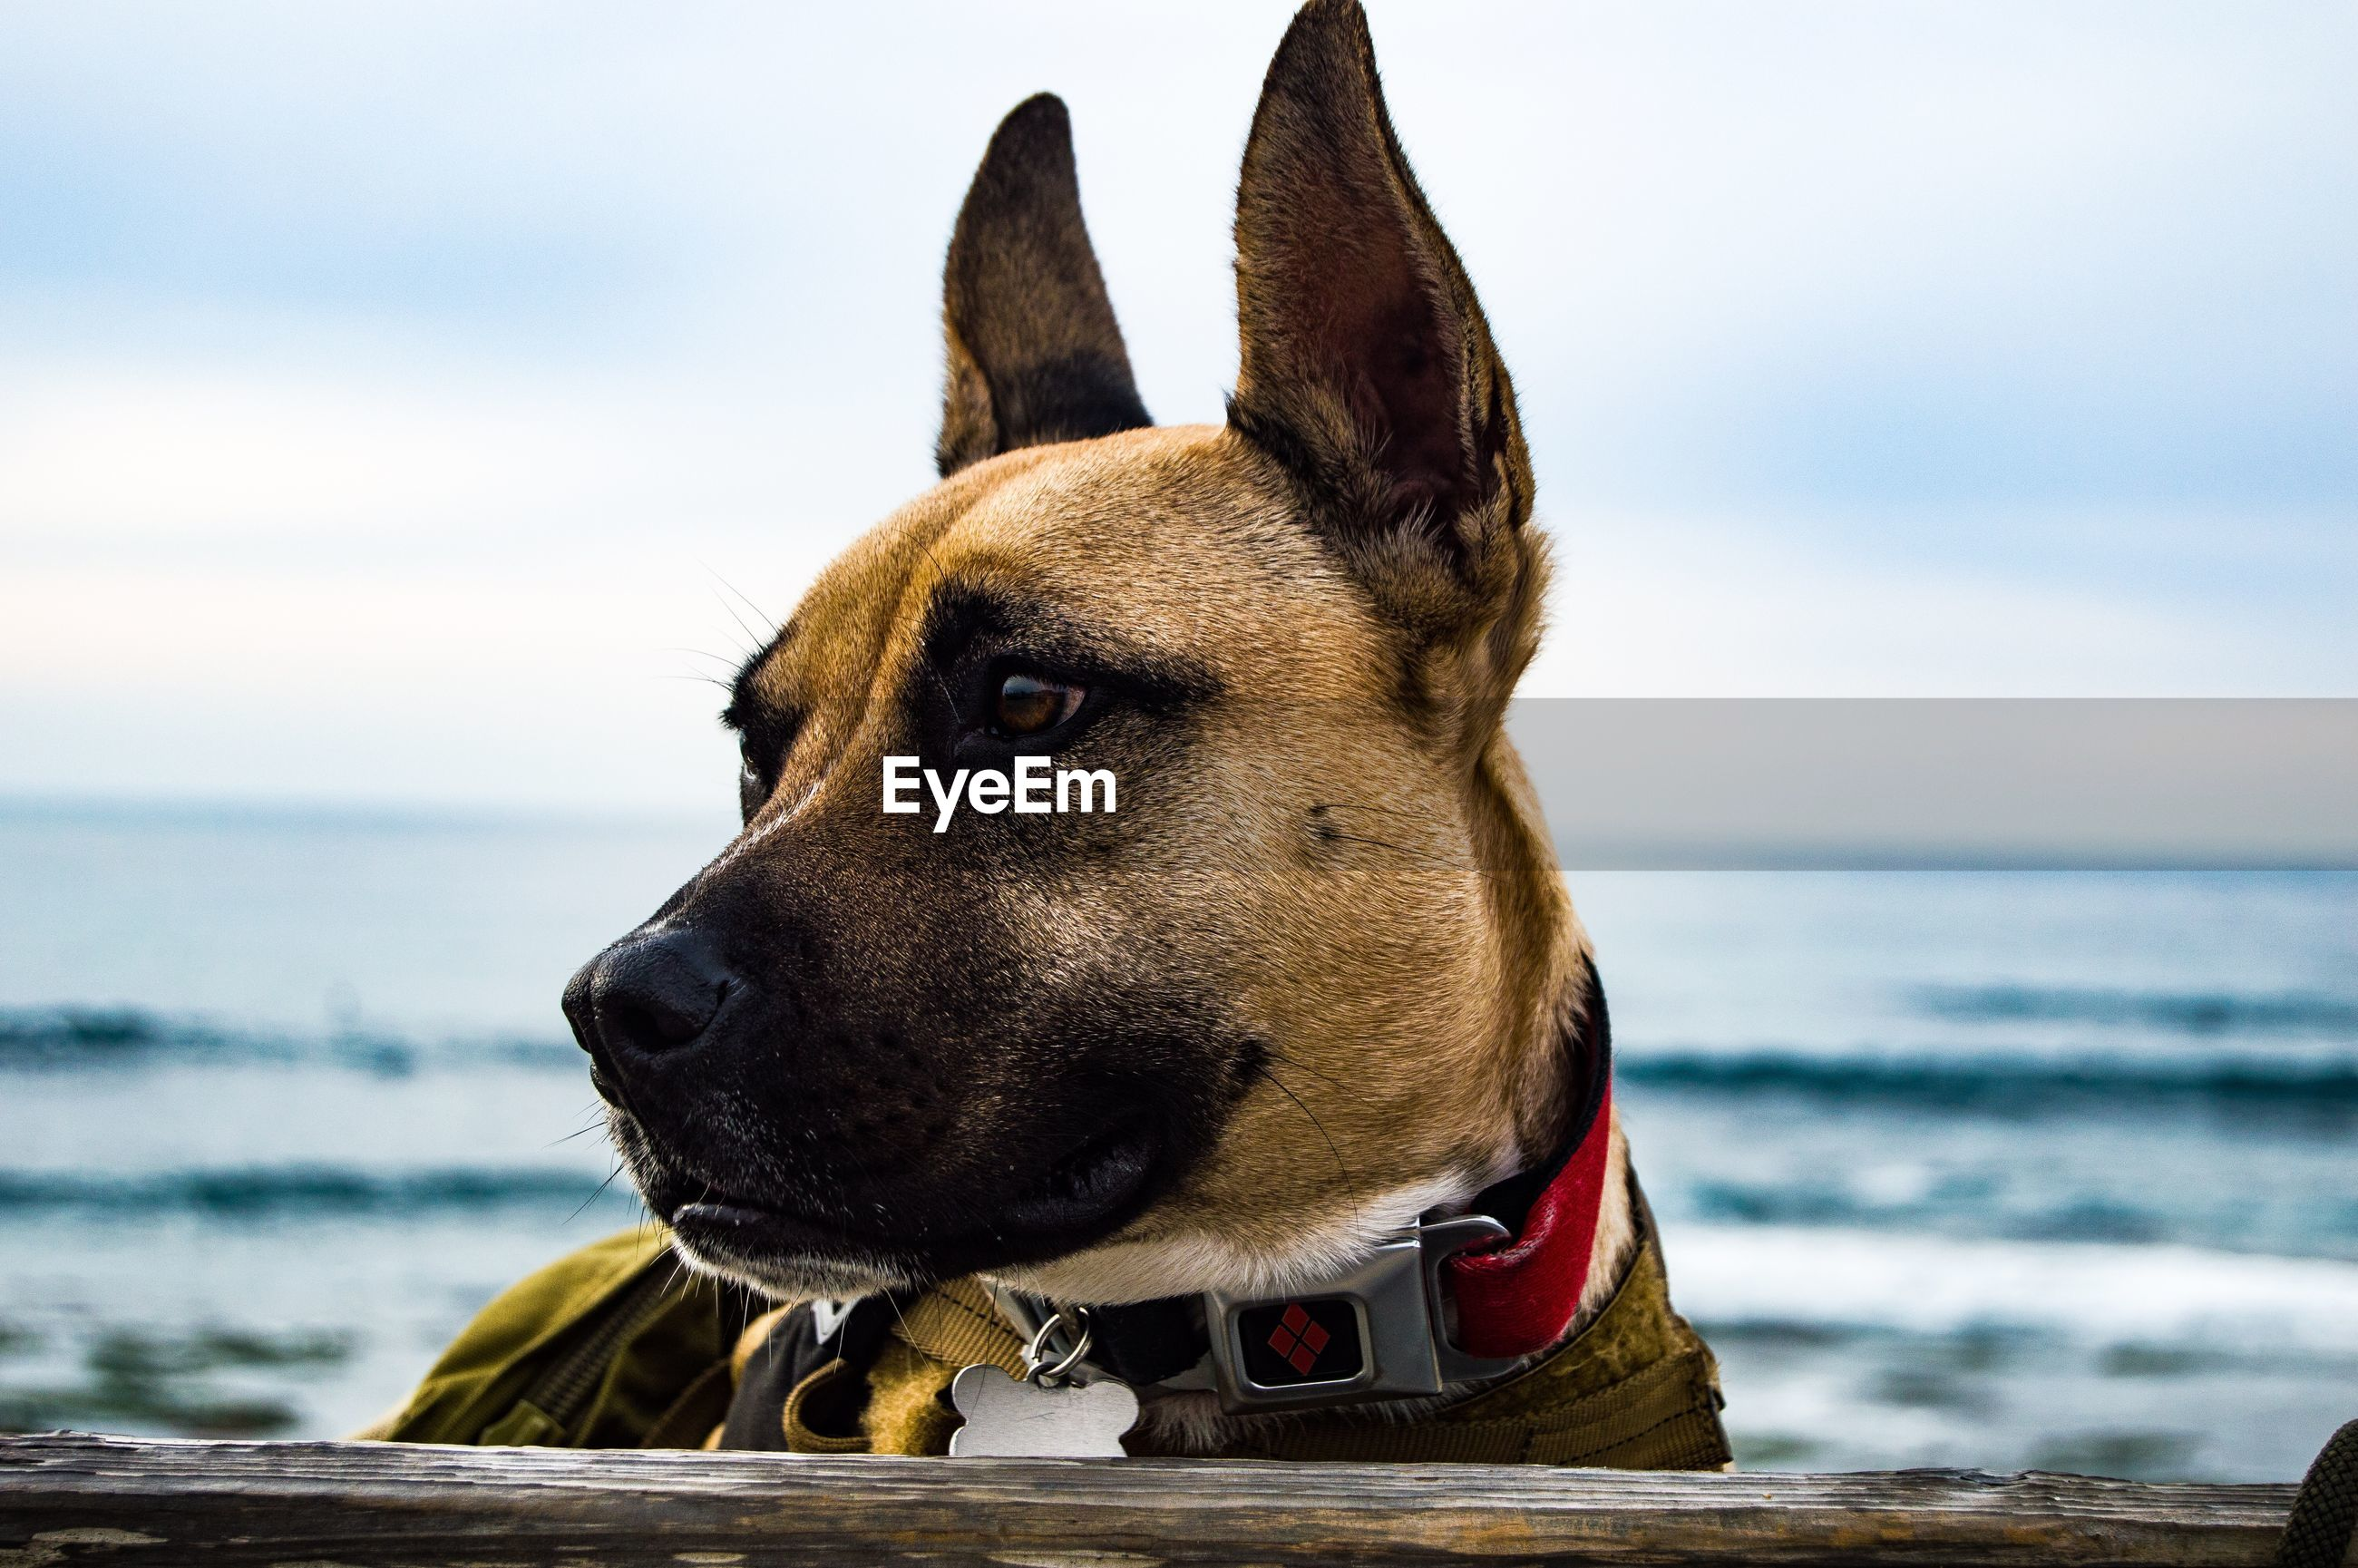 CLOSE-UP OF A DOG AGAINST THE SEA